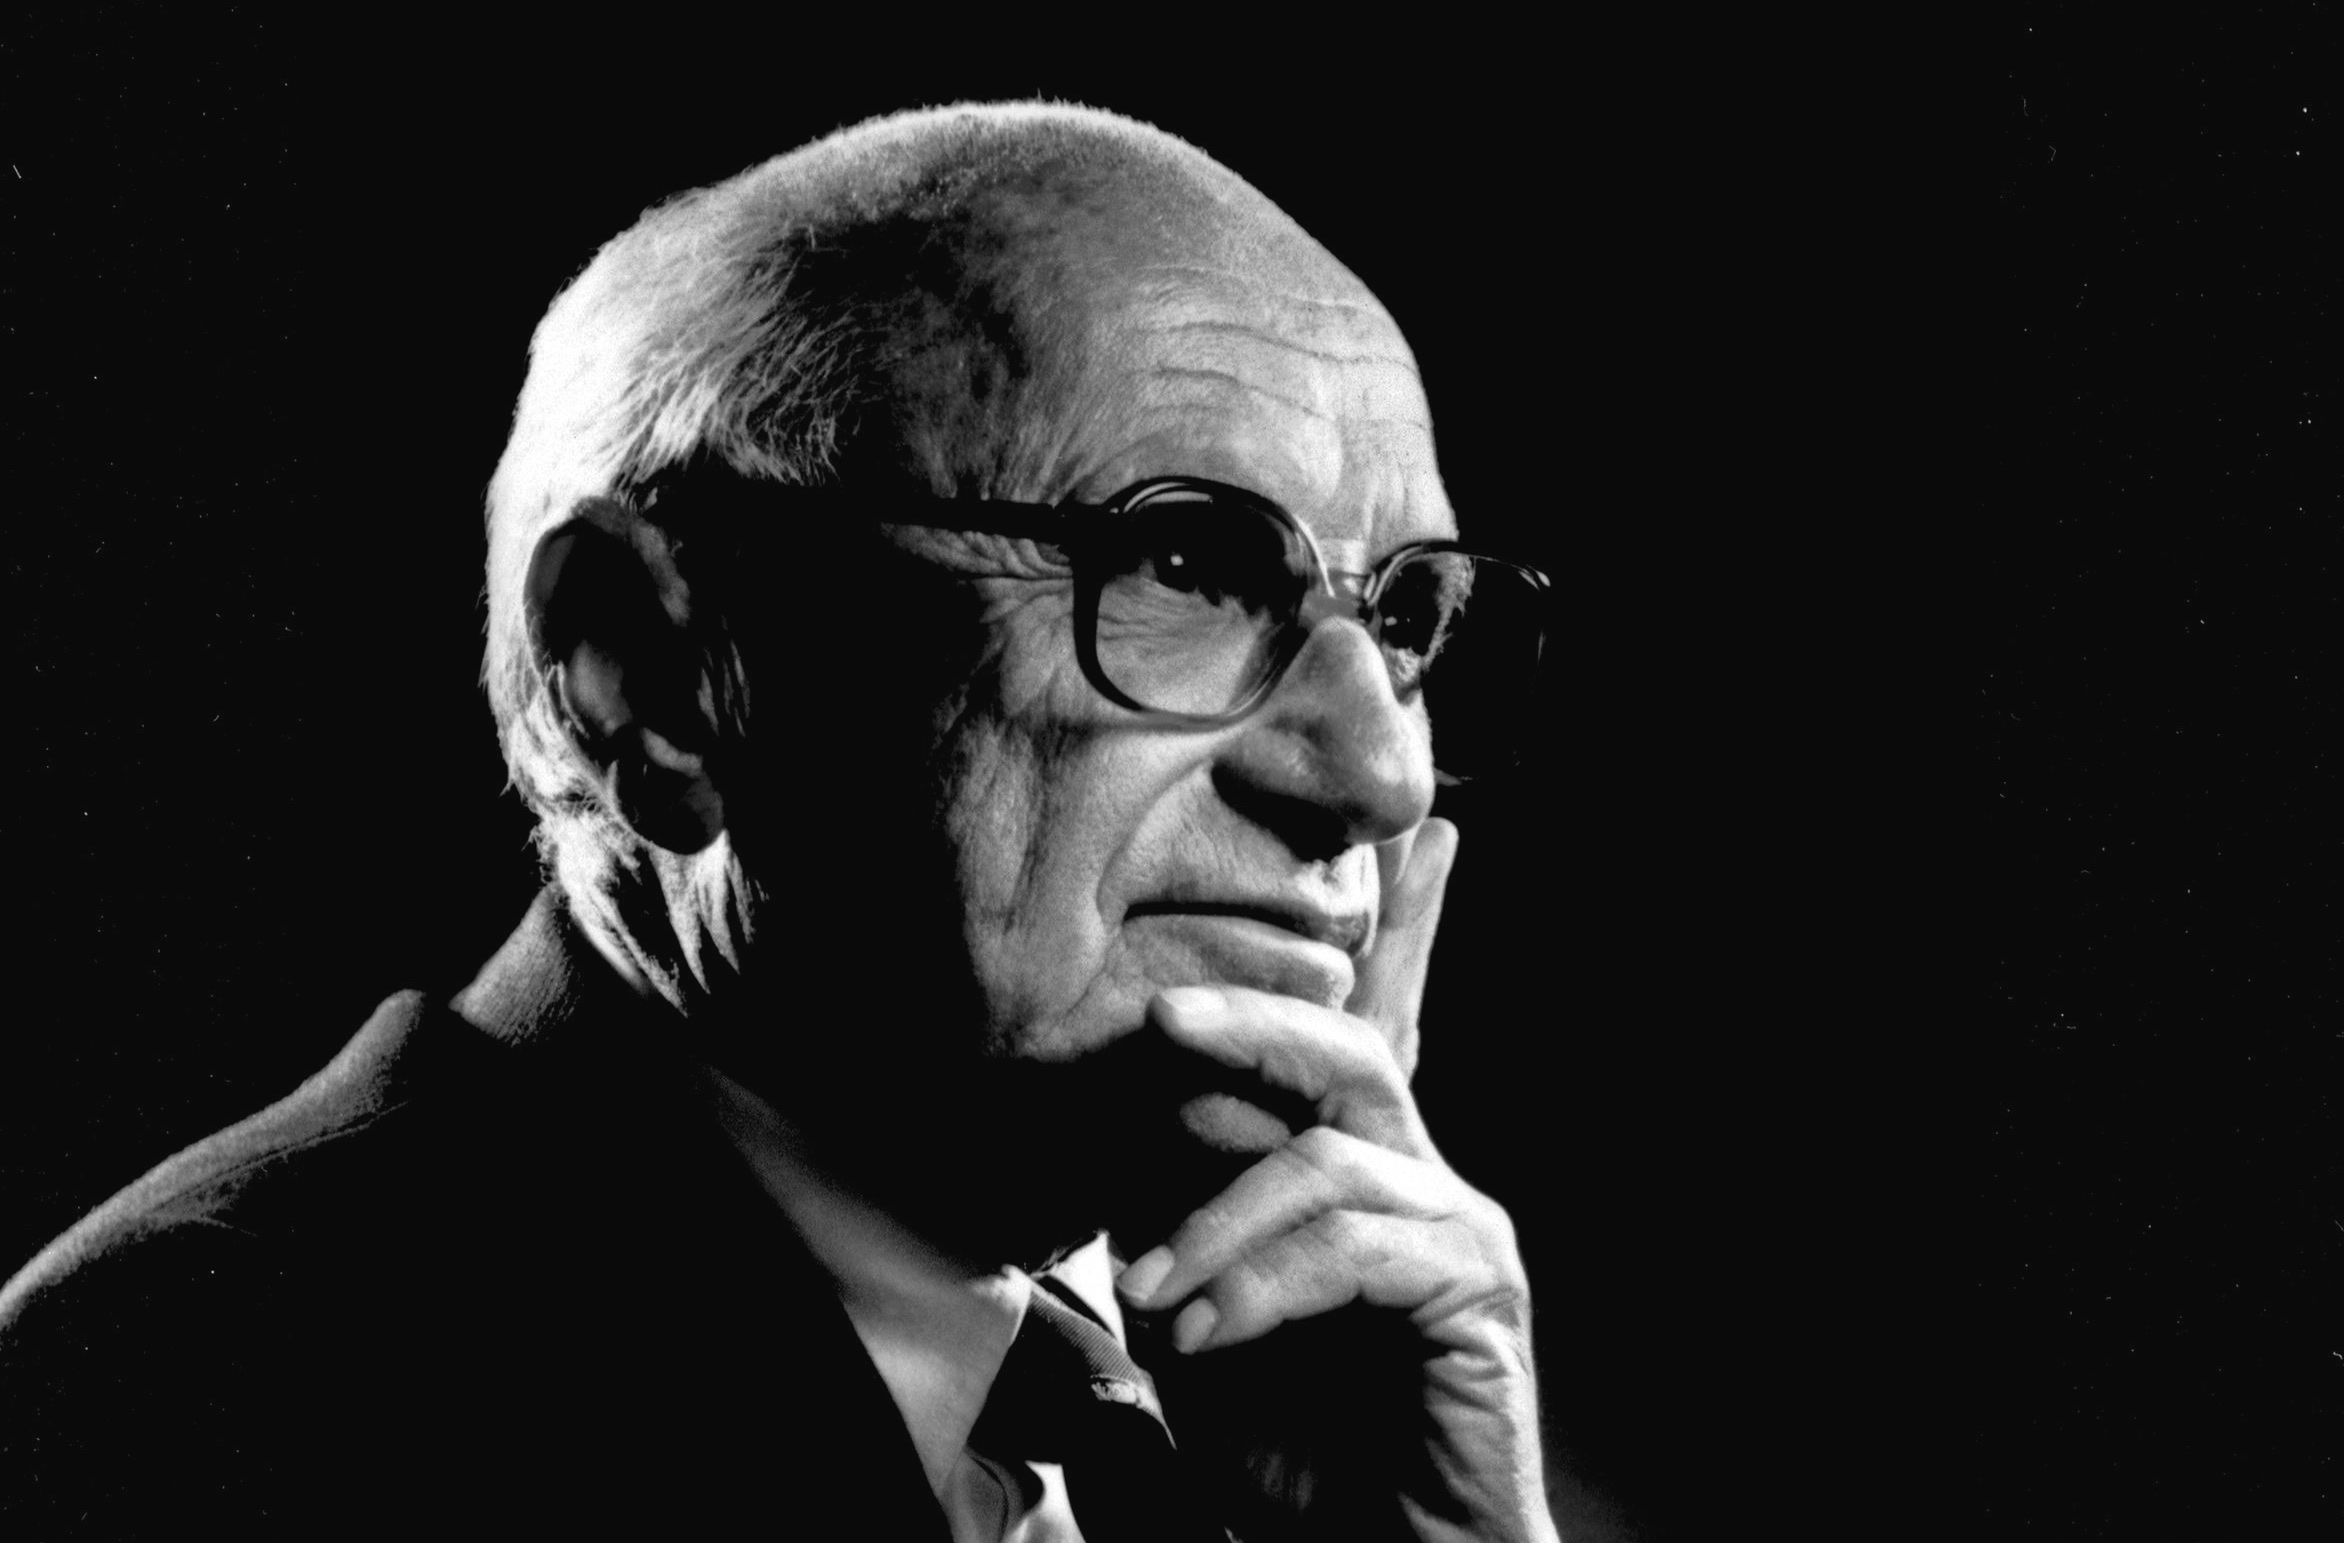 milton friedman essays Stanford, ca – the hoover institution press today released milton friedman on freedom: selections from the collected works of milton friedman, a collection of fifteen of friedman's essays on the subject of freedom the book, edited by robert leeson and charles g palm and featuring a foreword.